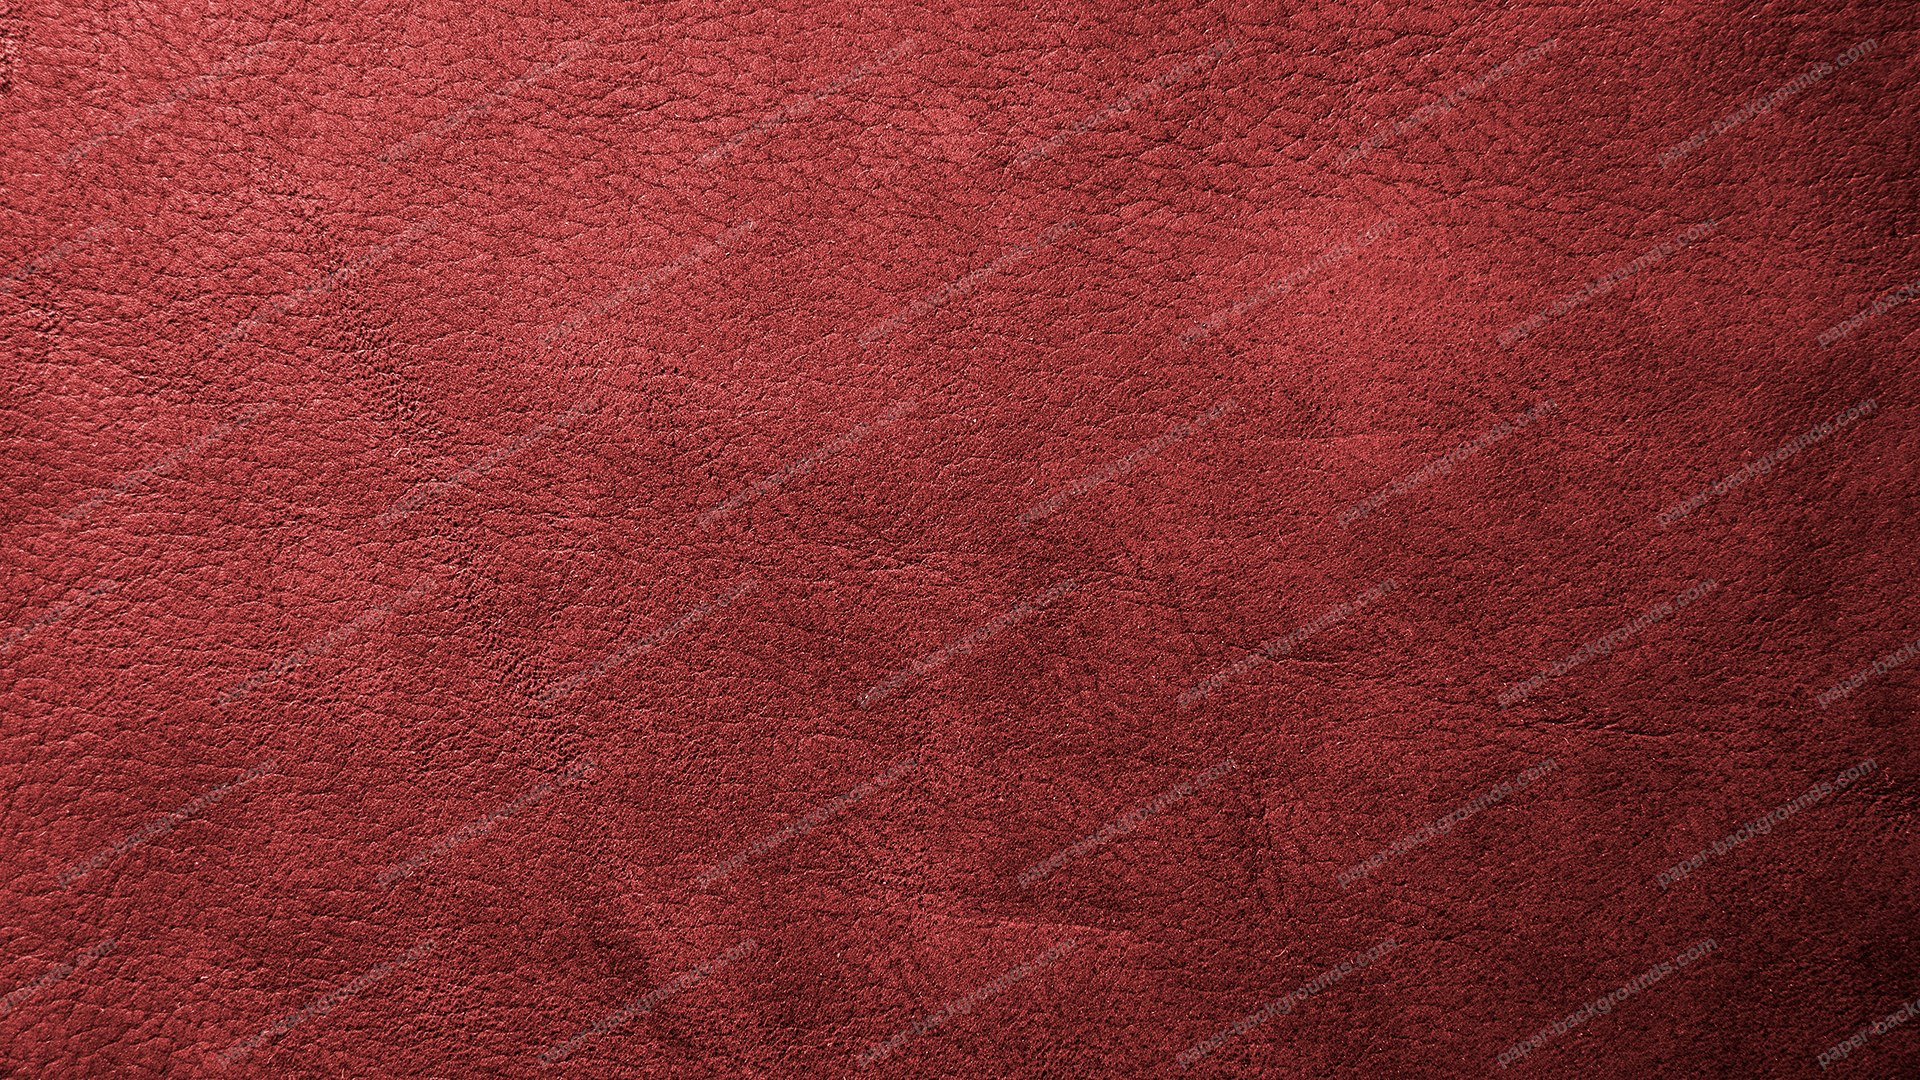 Red Leather Texture Background HD 1920 x 1080p